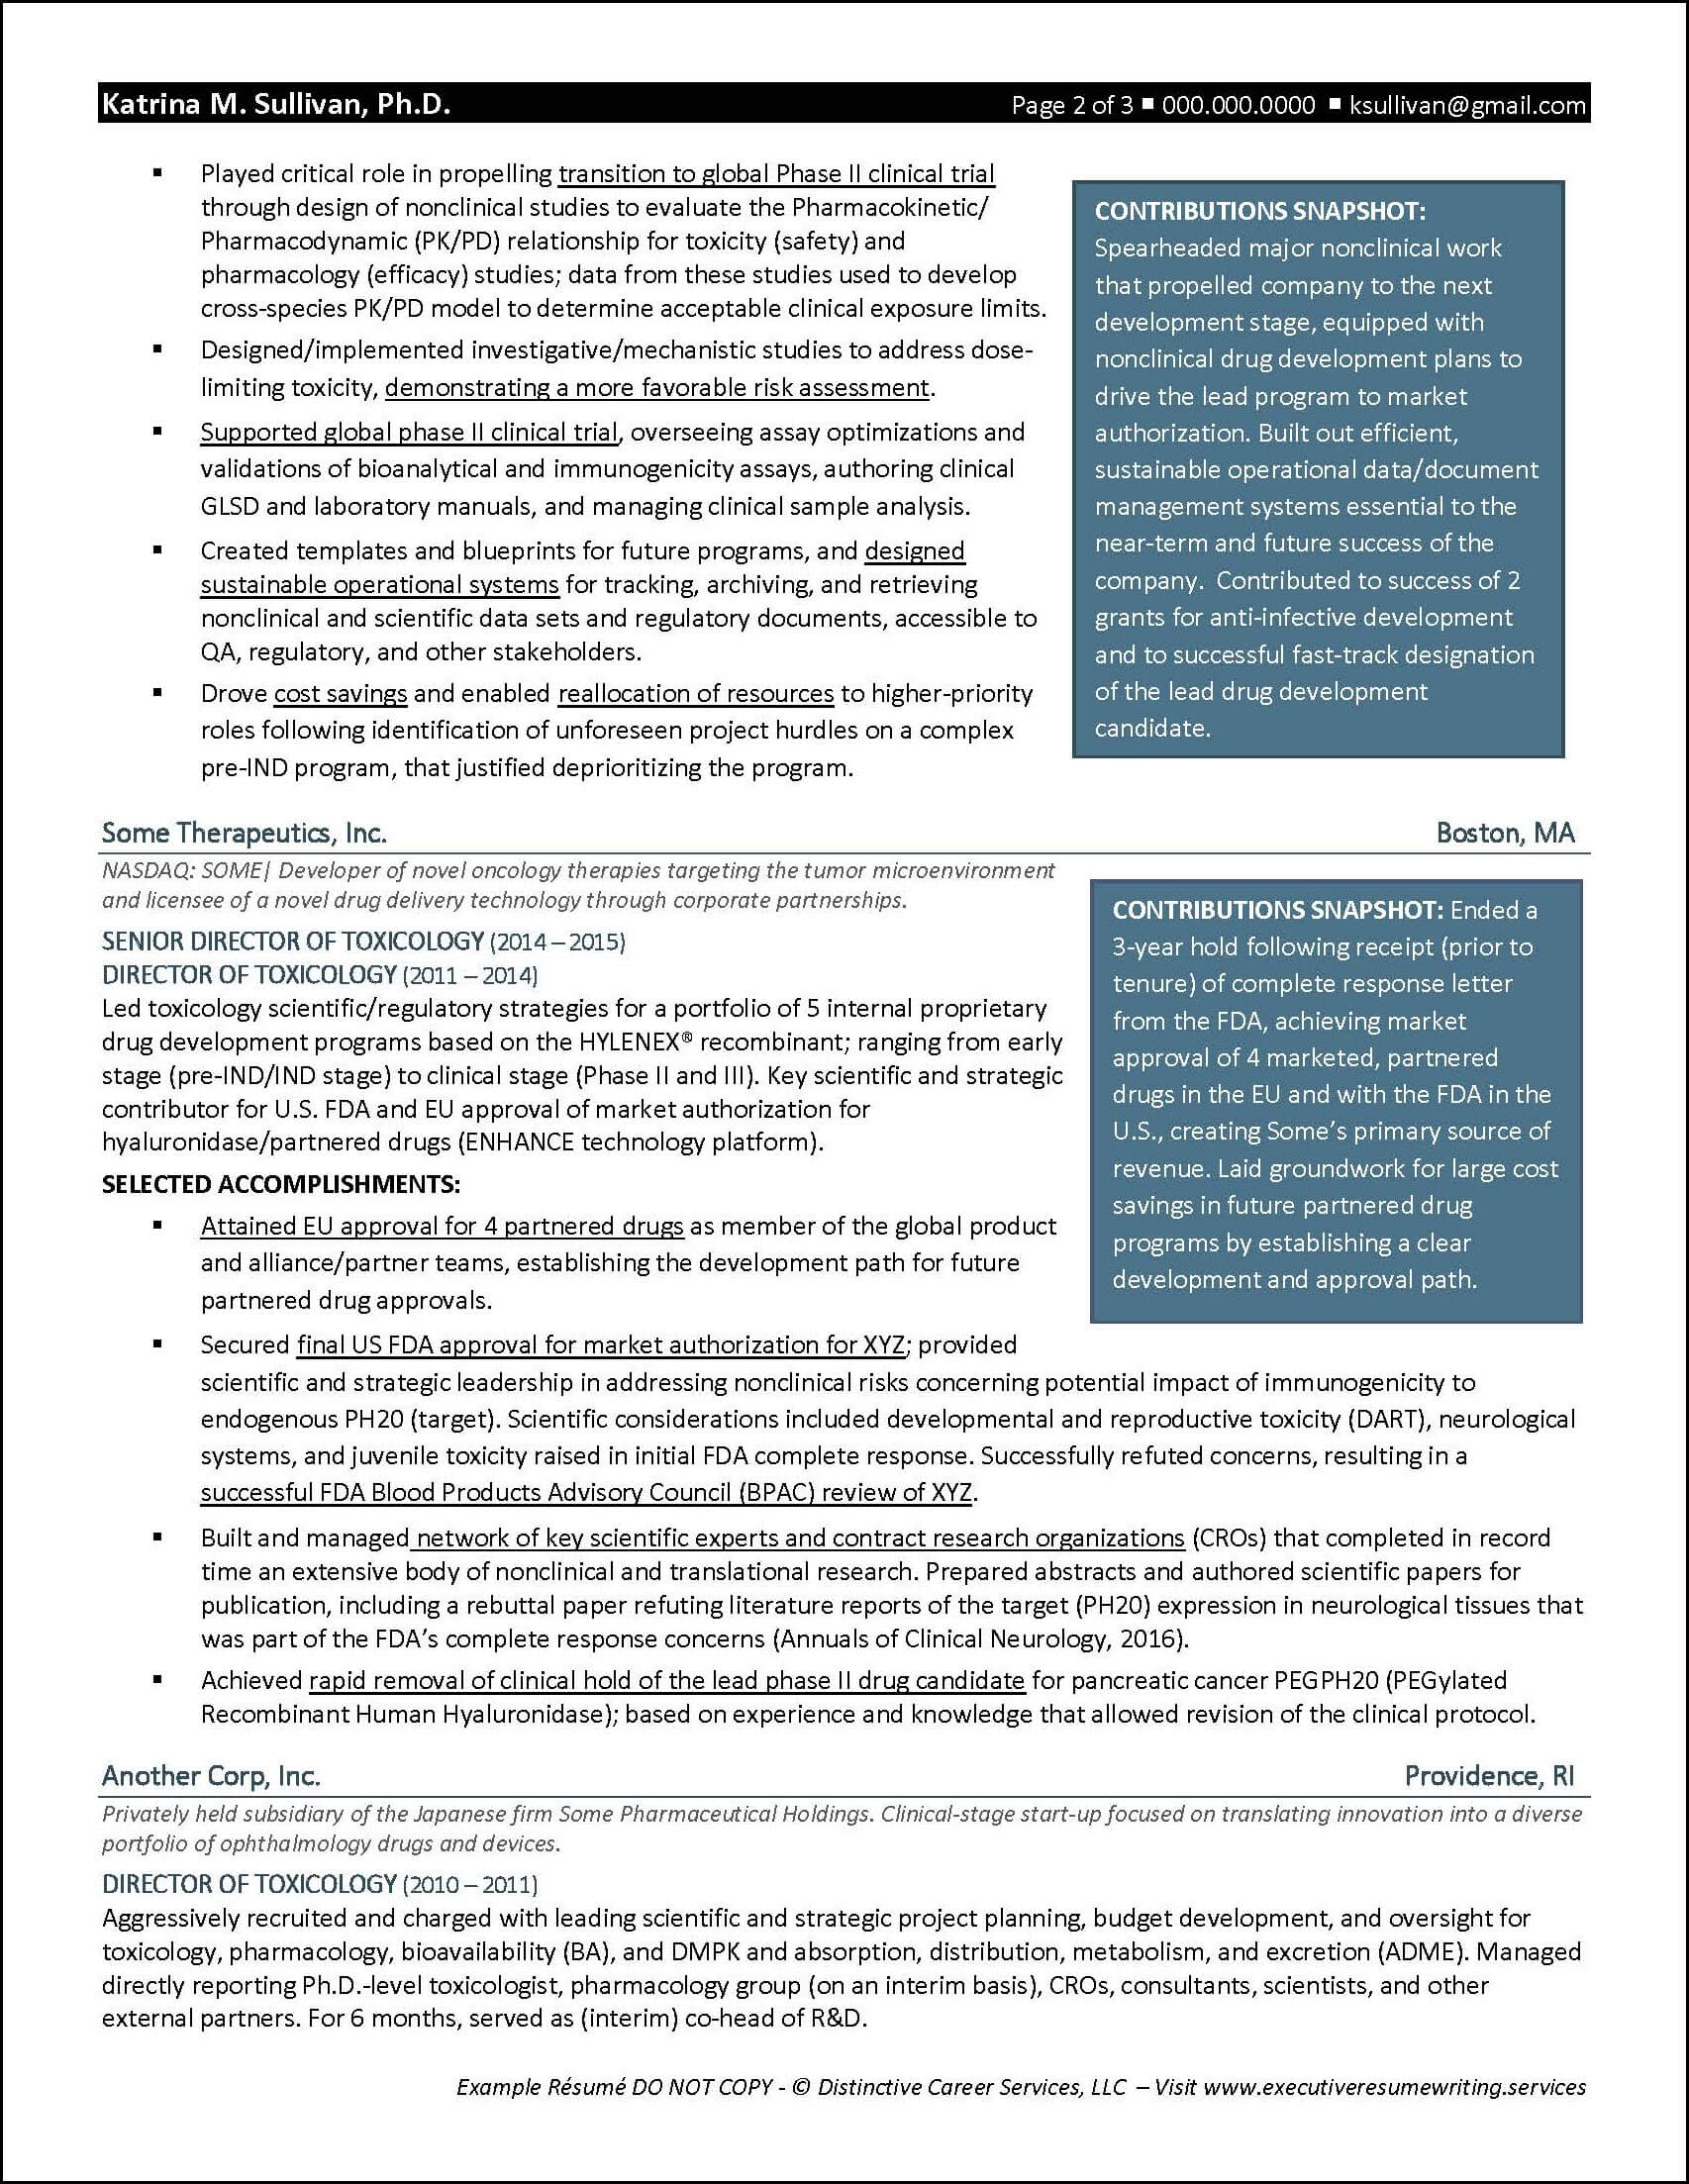 Example Executive Resume - Biotech R&D - pg2